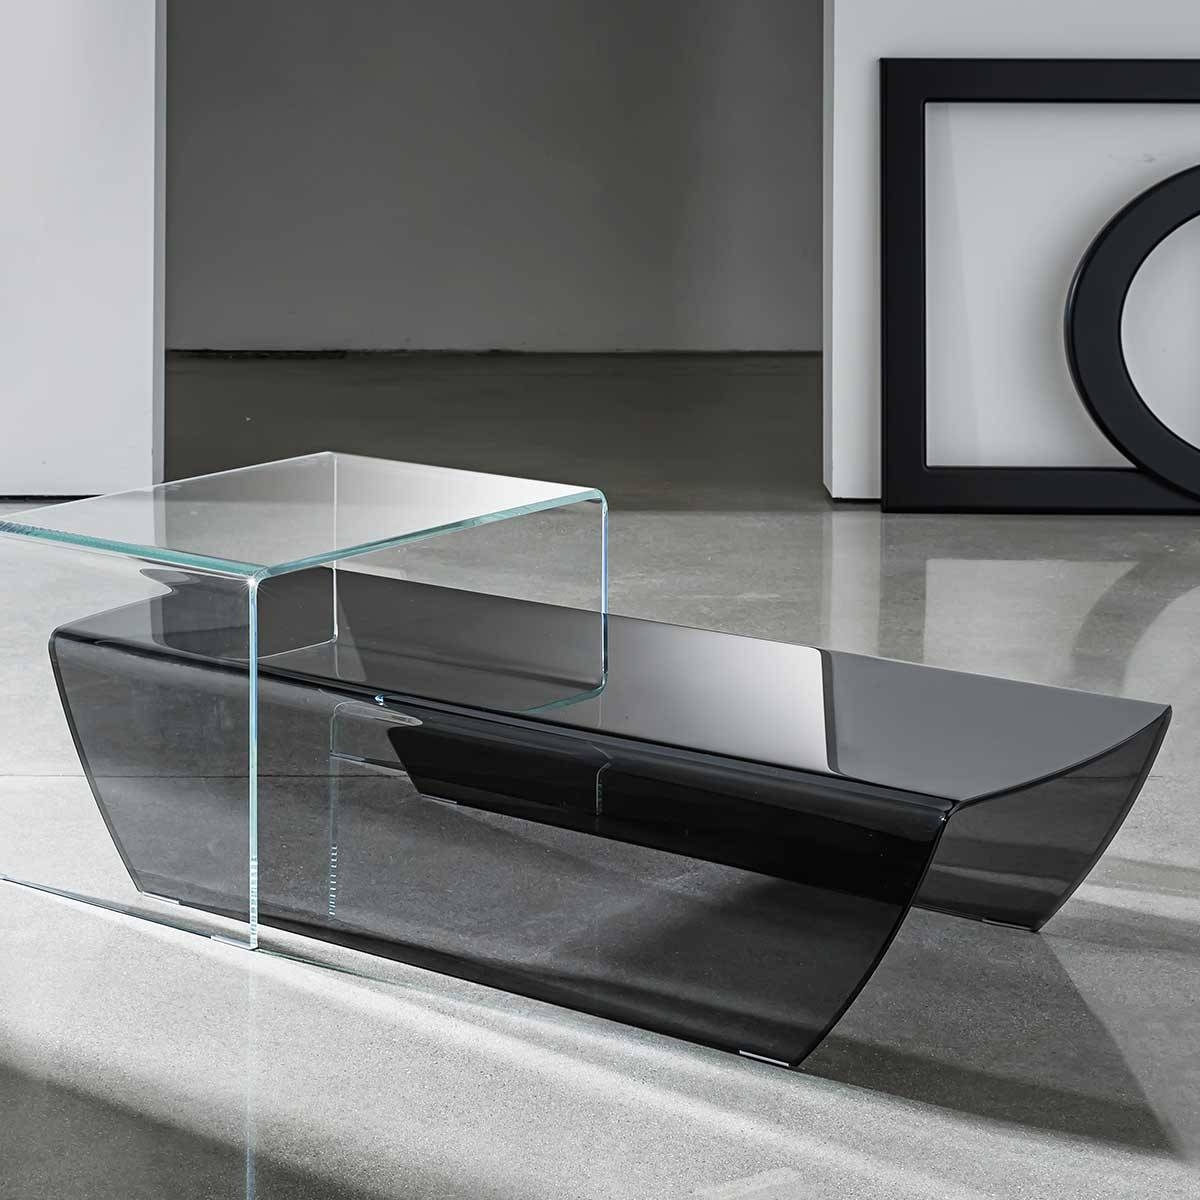 Taky Curved Glass Coffee Table - Klarity - Glass Furniture inside Curved Glass Coffee Tables (Image 26 of 30)